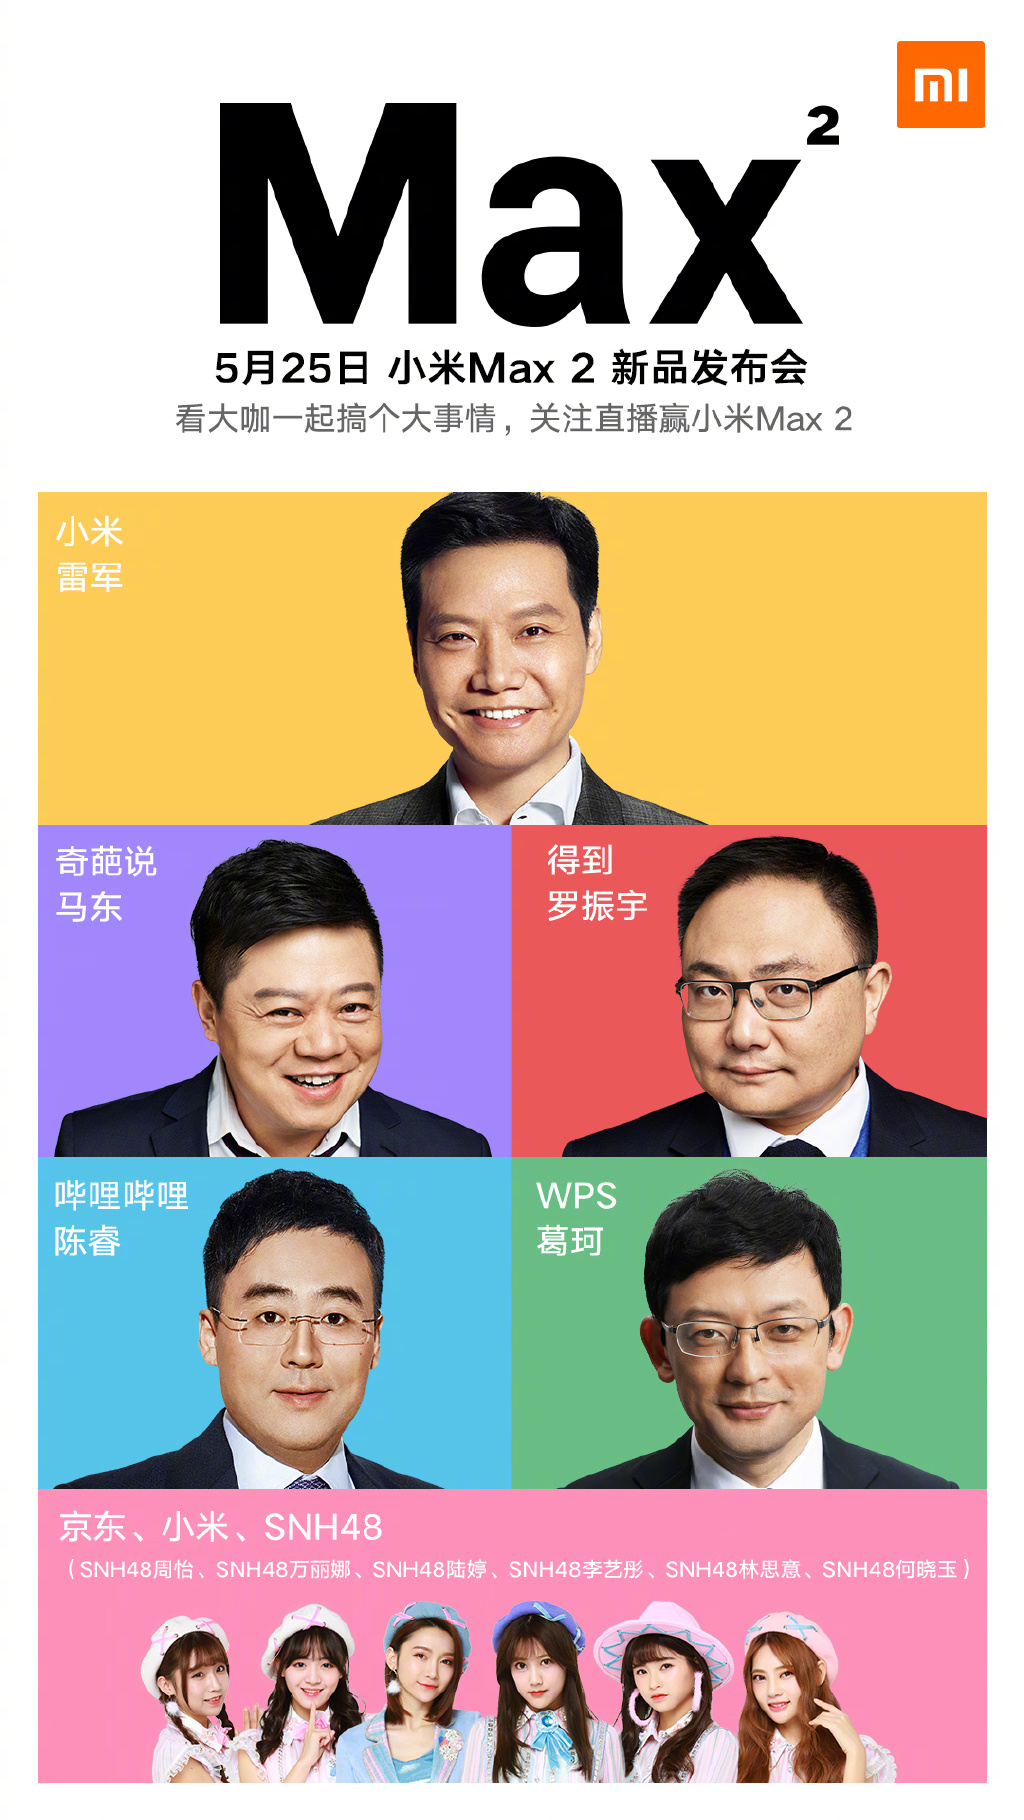 Xiaomi Mi Max 2 confirmed to be unveiled on May 25th